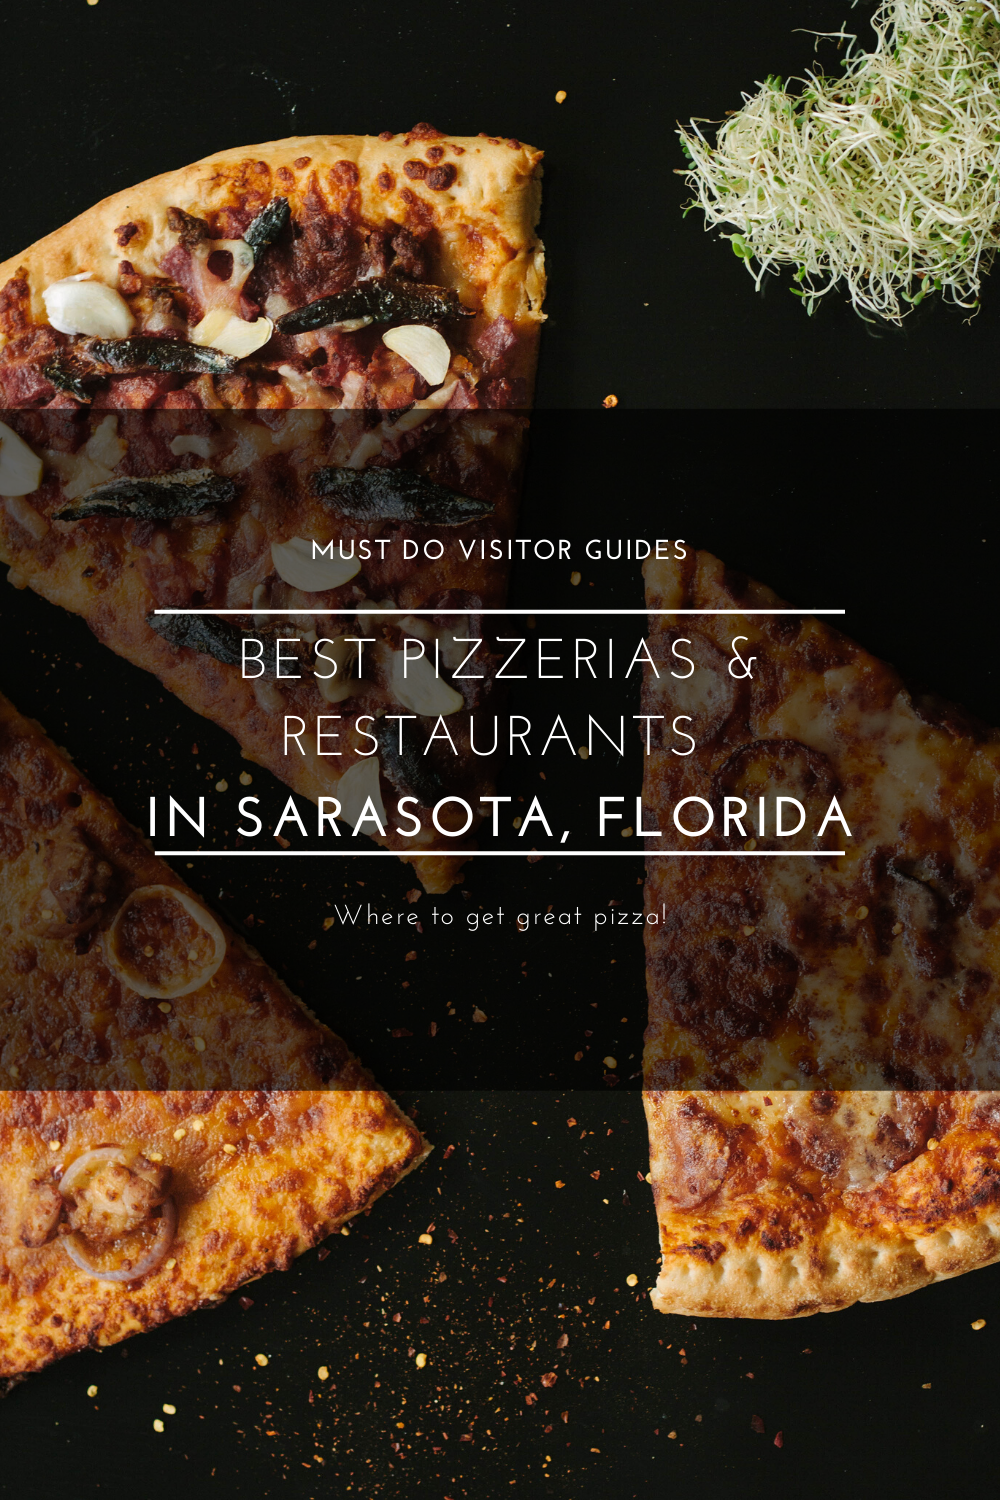 Who Makes the Best Pizza in Sarasota? A list of some of the best restaurants and pizzerias to get great pizza in Sarasota, Florida. Must Do Visitor Guides | MustDo.com